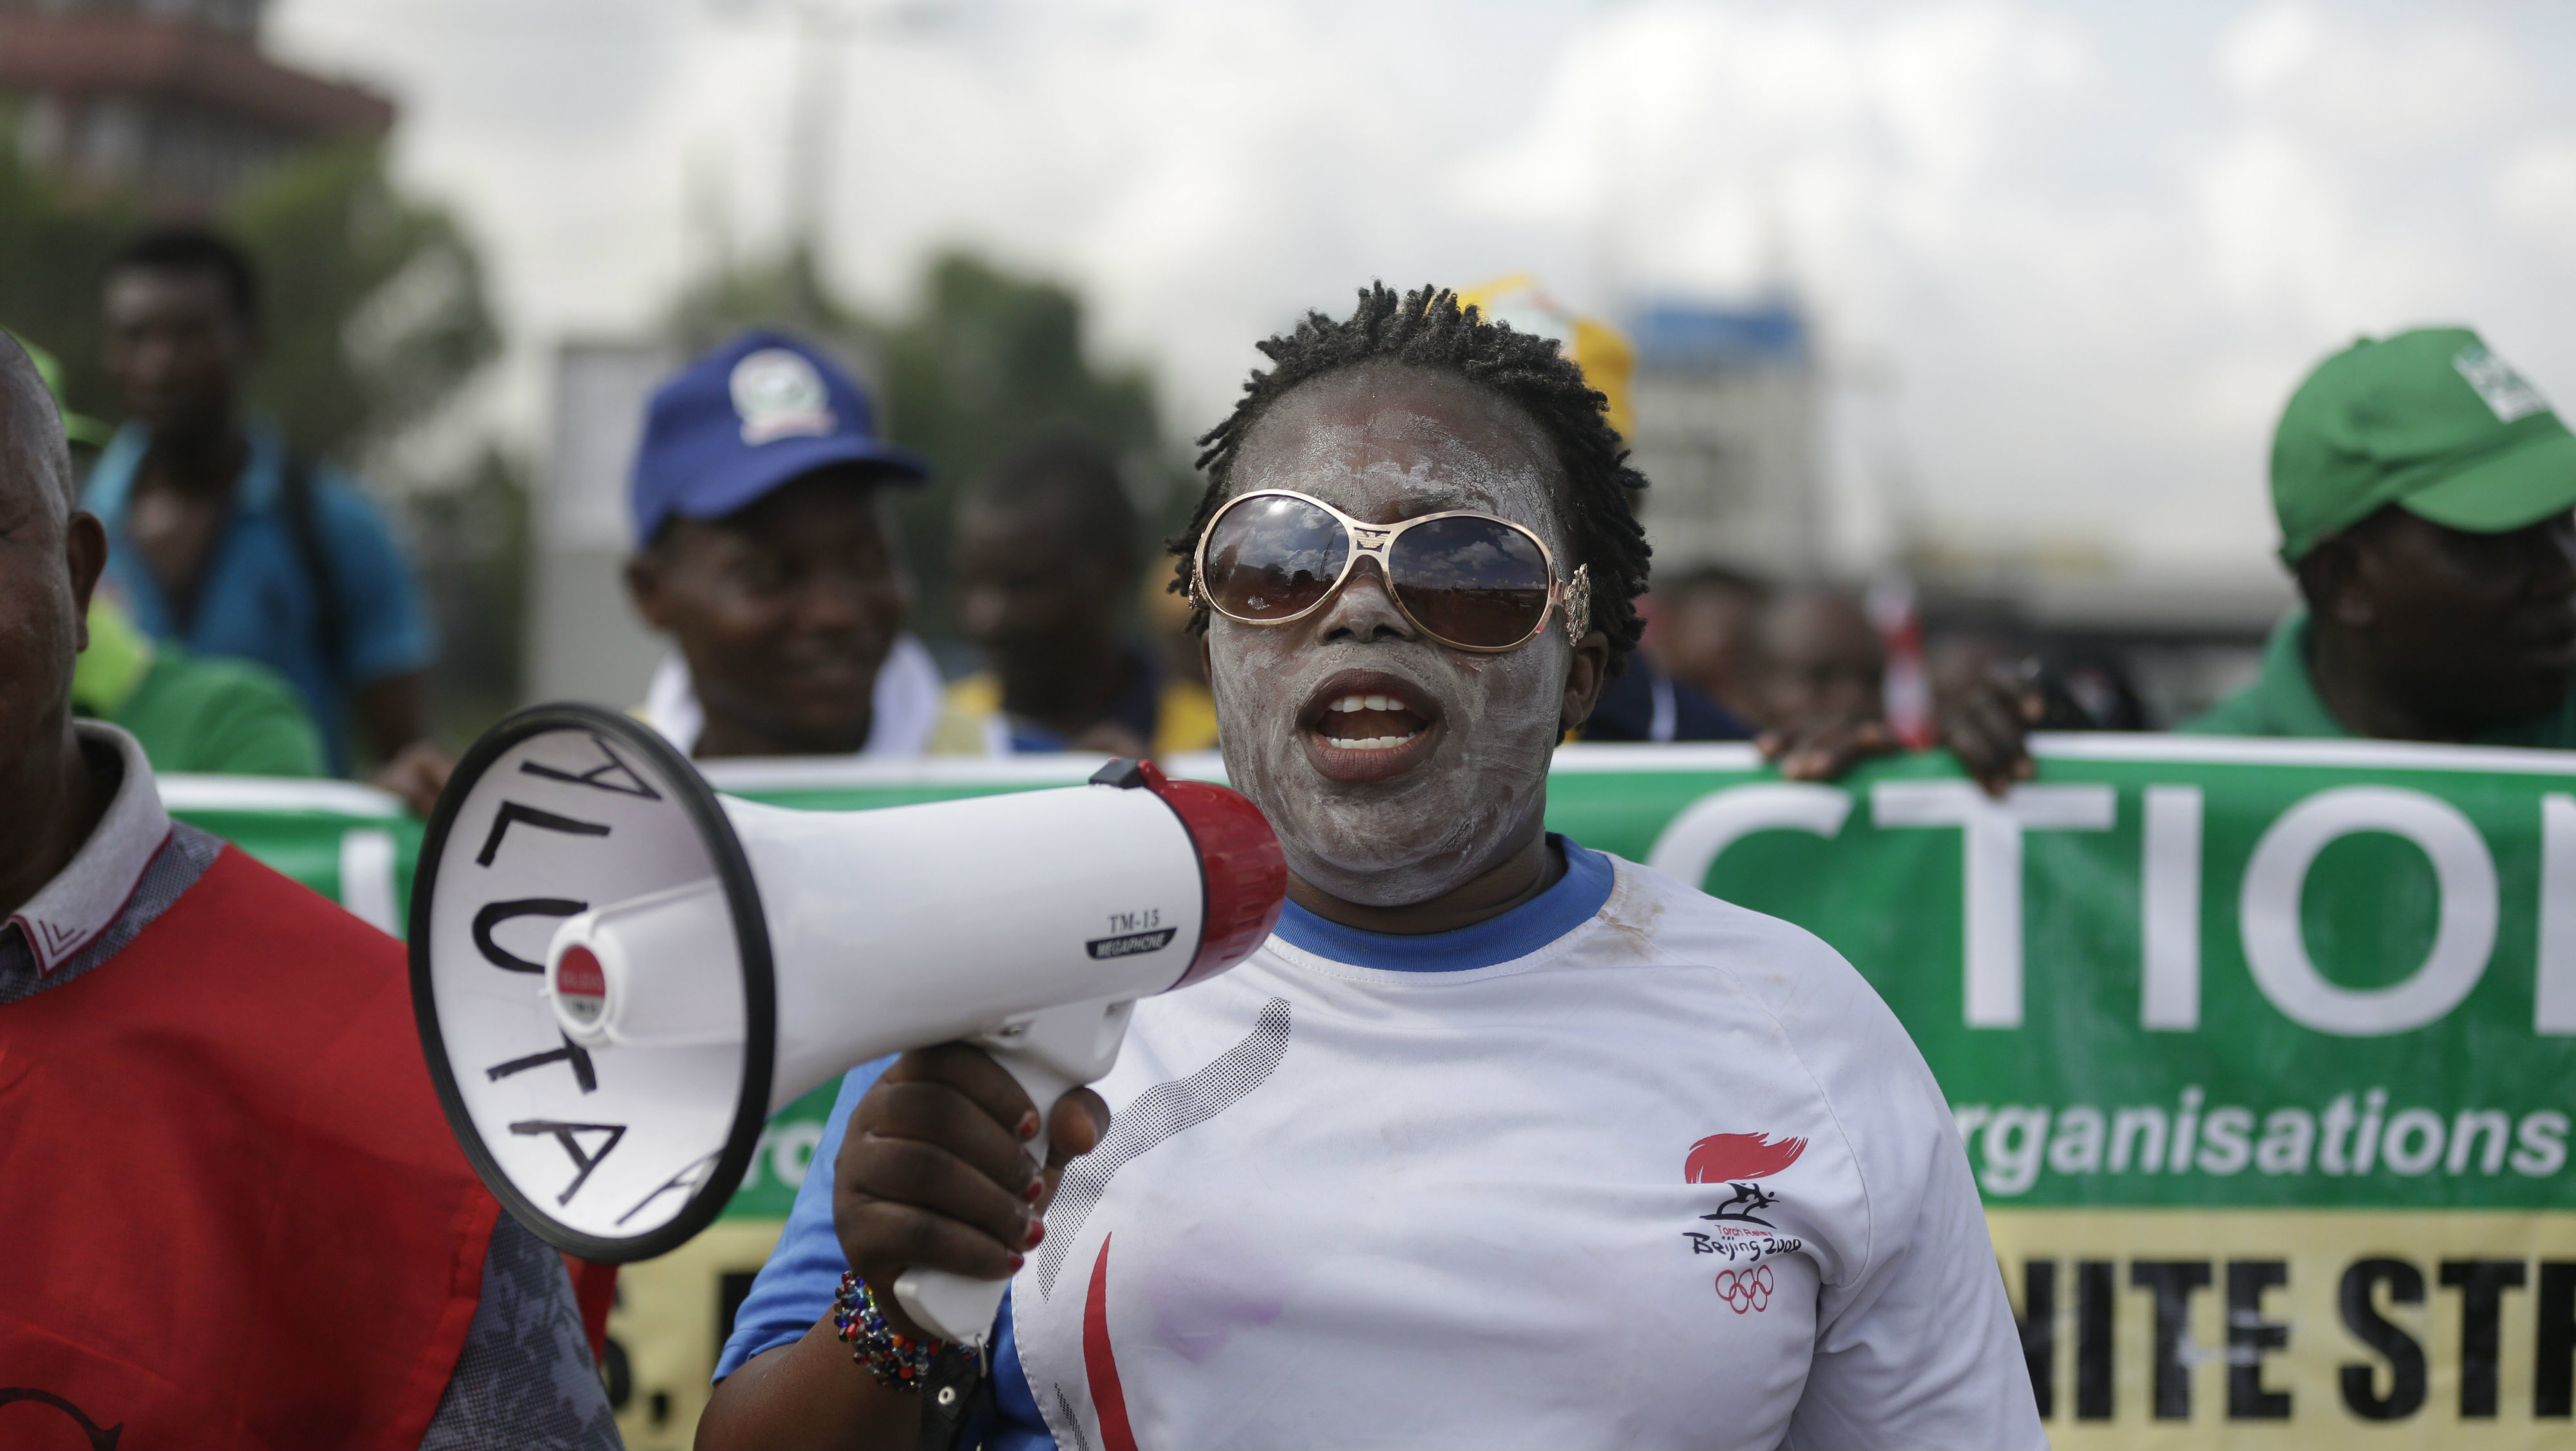 A woman joins in a protest following the removal of a fuel subsidy by the government in Lagos, Nigeria, Wednesday, May 18, 2016. Militant attacks on oil installations and the threat of a nationwide strike drove Nigeria's petroleum production and its naira currency to new lows Tuesday.